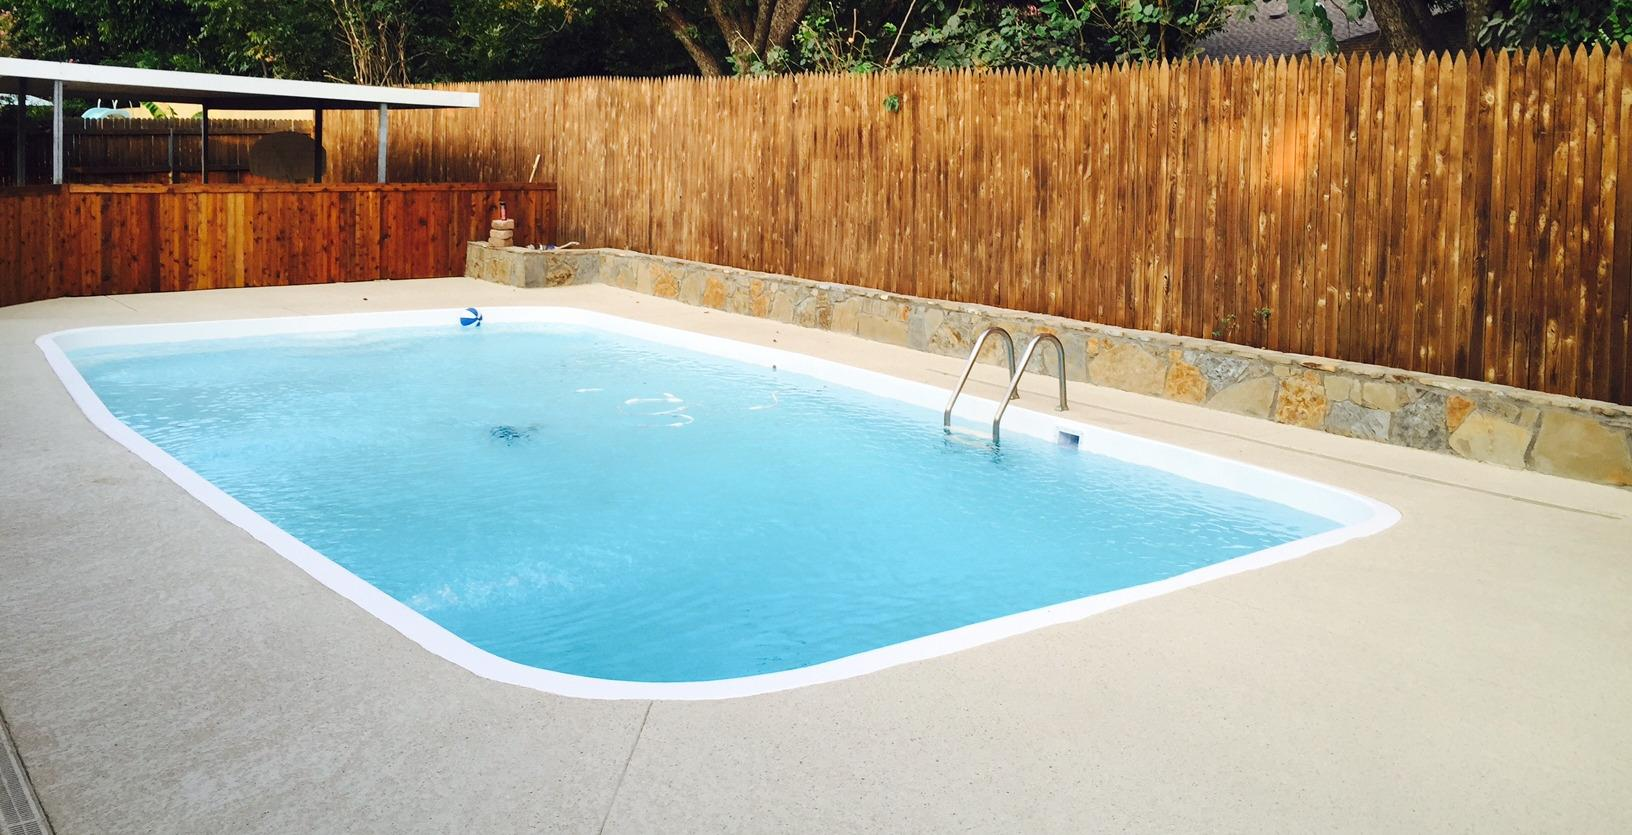 Permablue Pool Service Coupons Near Me In Arlington 8coupons